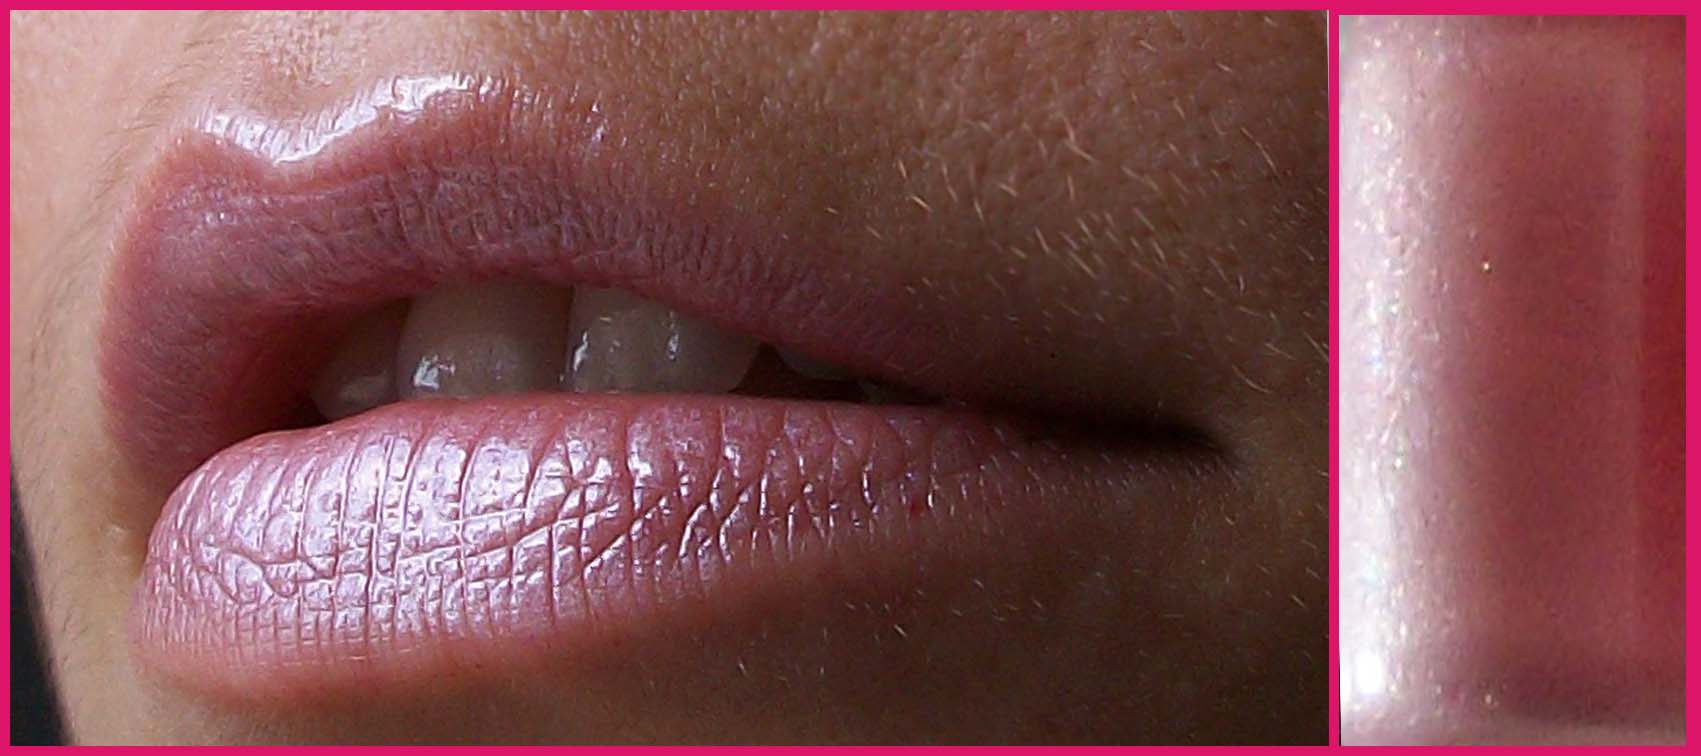 immagine lip gloss rosa confetto fatto in casa homemade sfumaturemakeup & beauty